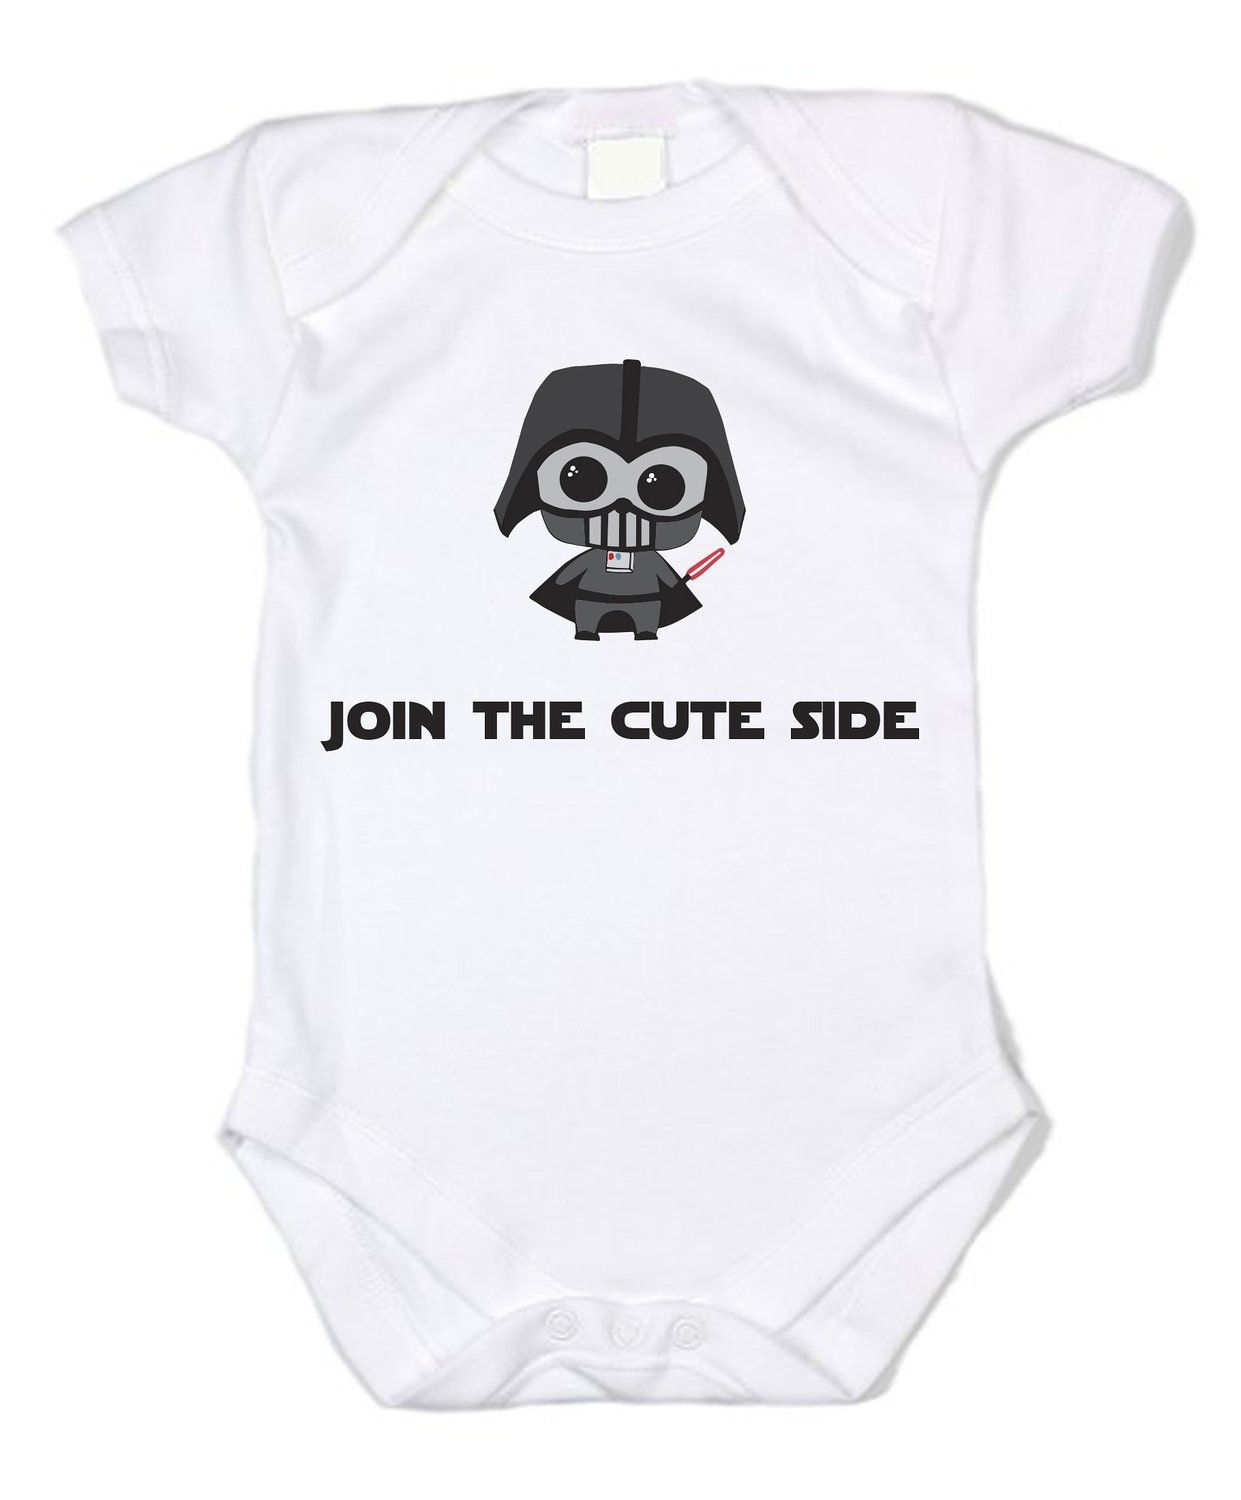 Star Wars Join The Cute Side Unisex Baby Bodysuit Gifts